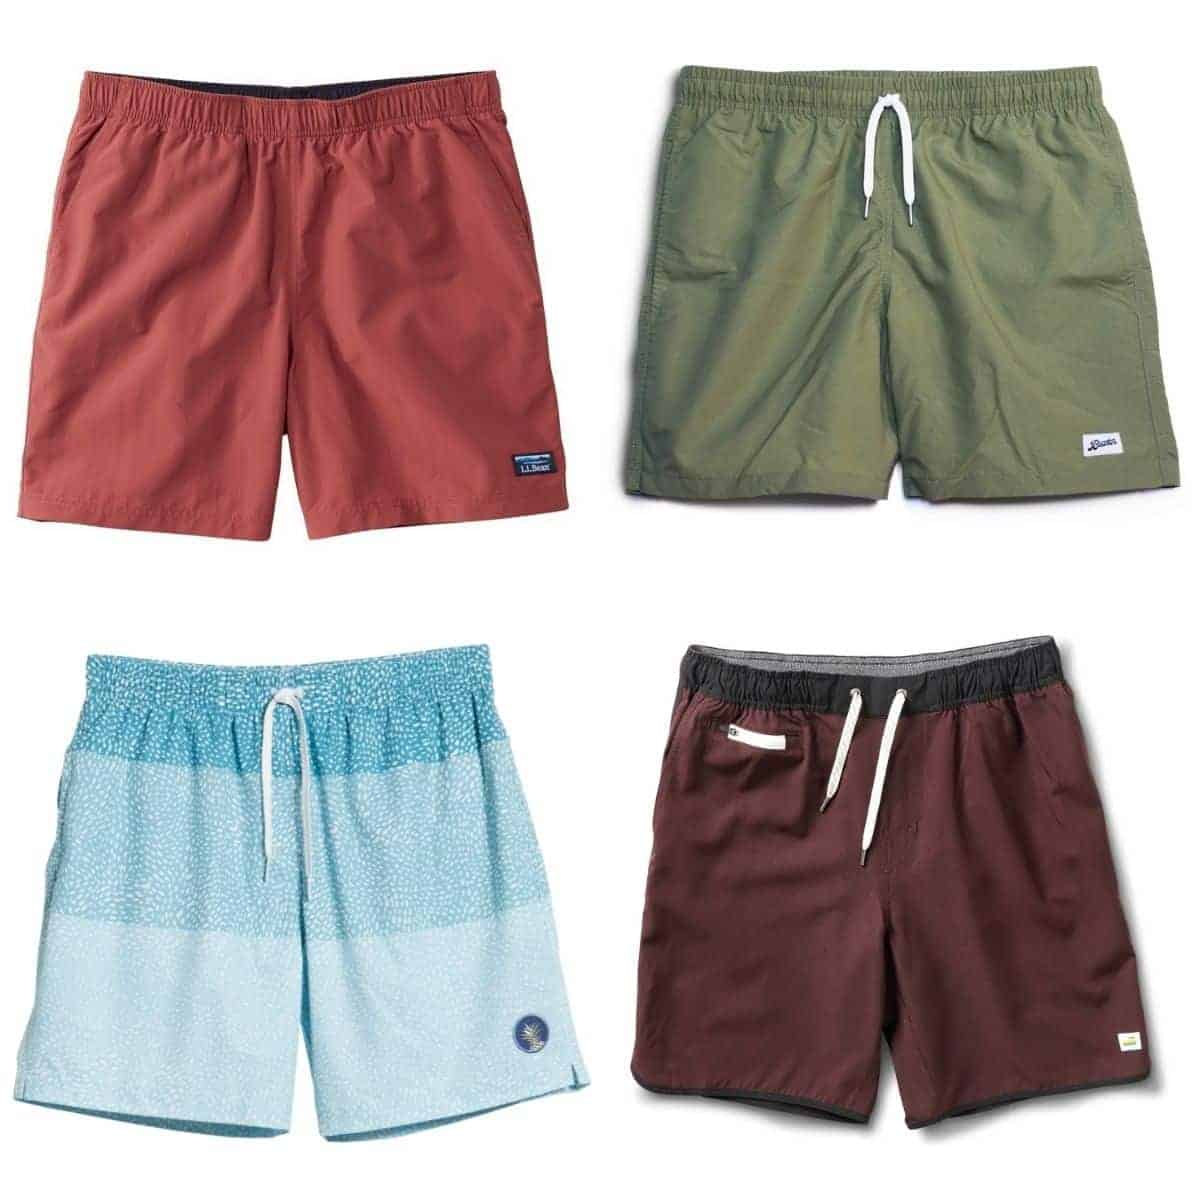 Four swim trunks of different colors.